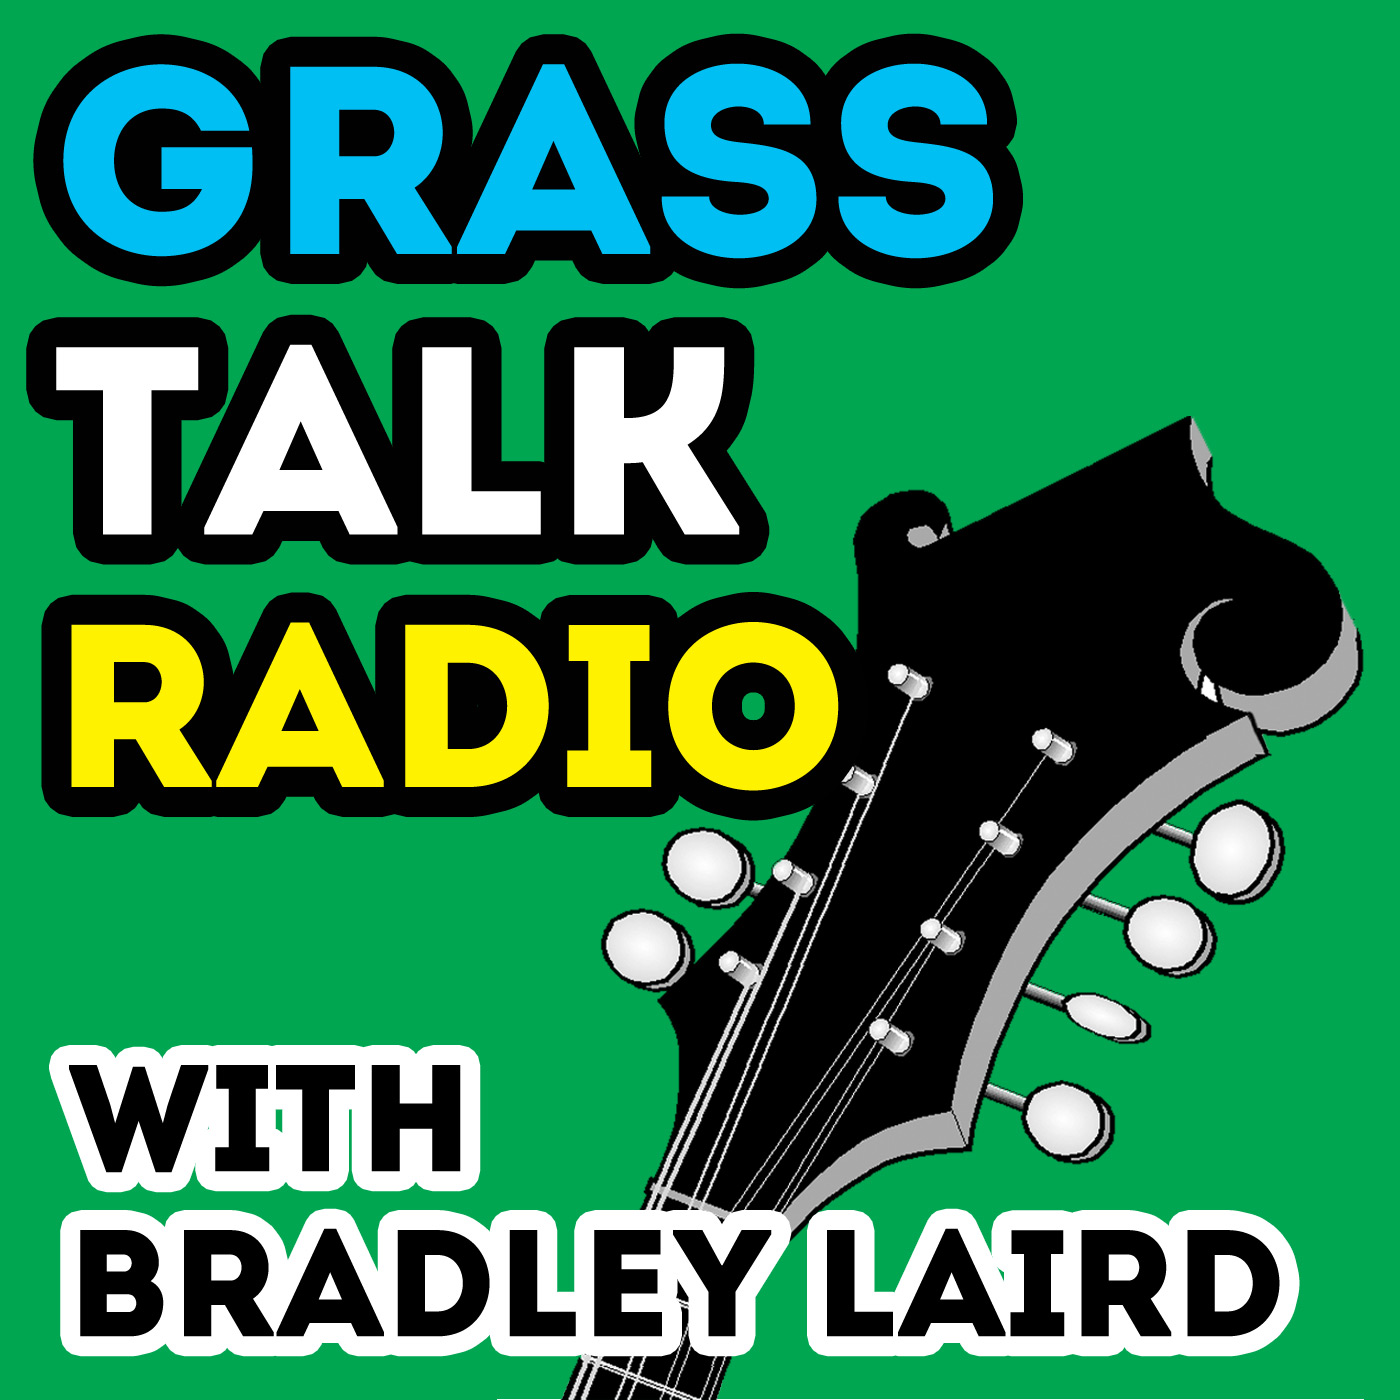 Bradley Laird's Grass Talk Radio - Bluegrass on Apple Podcasts